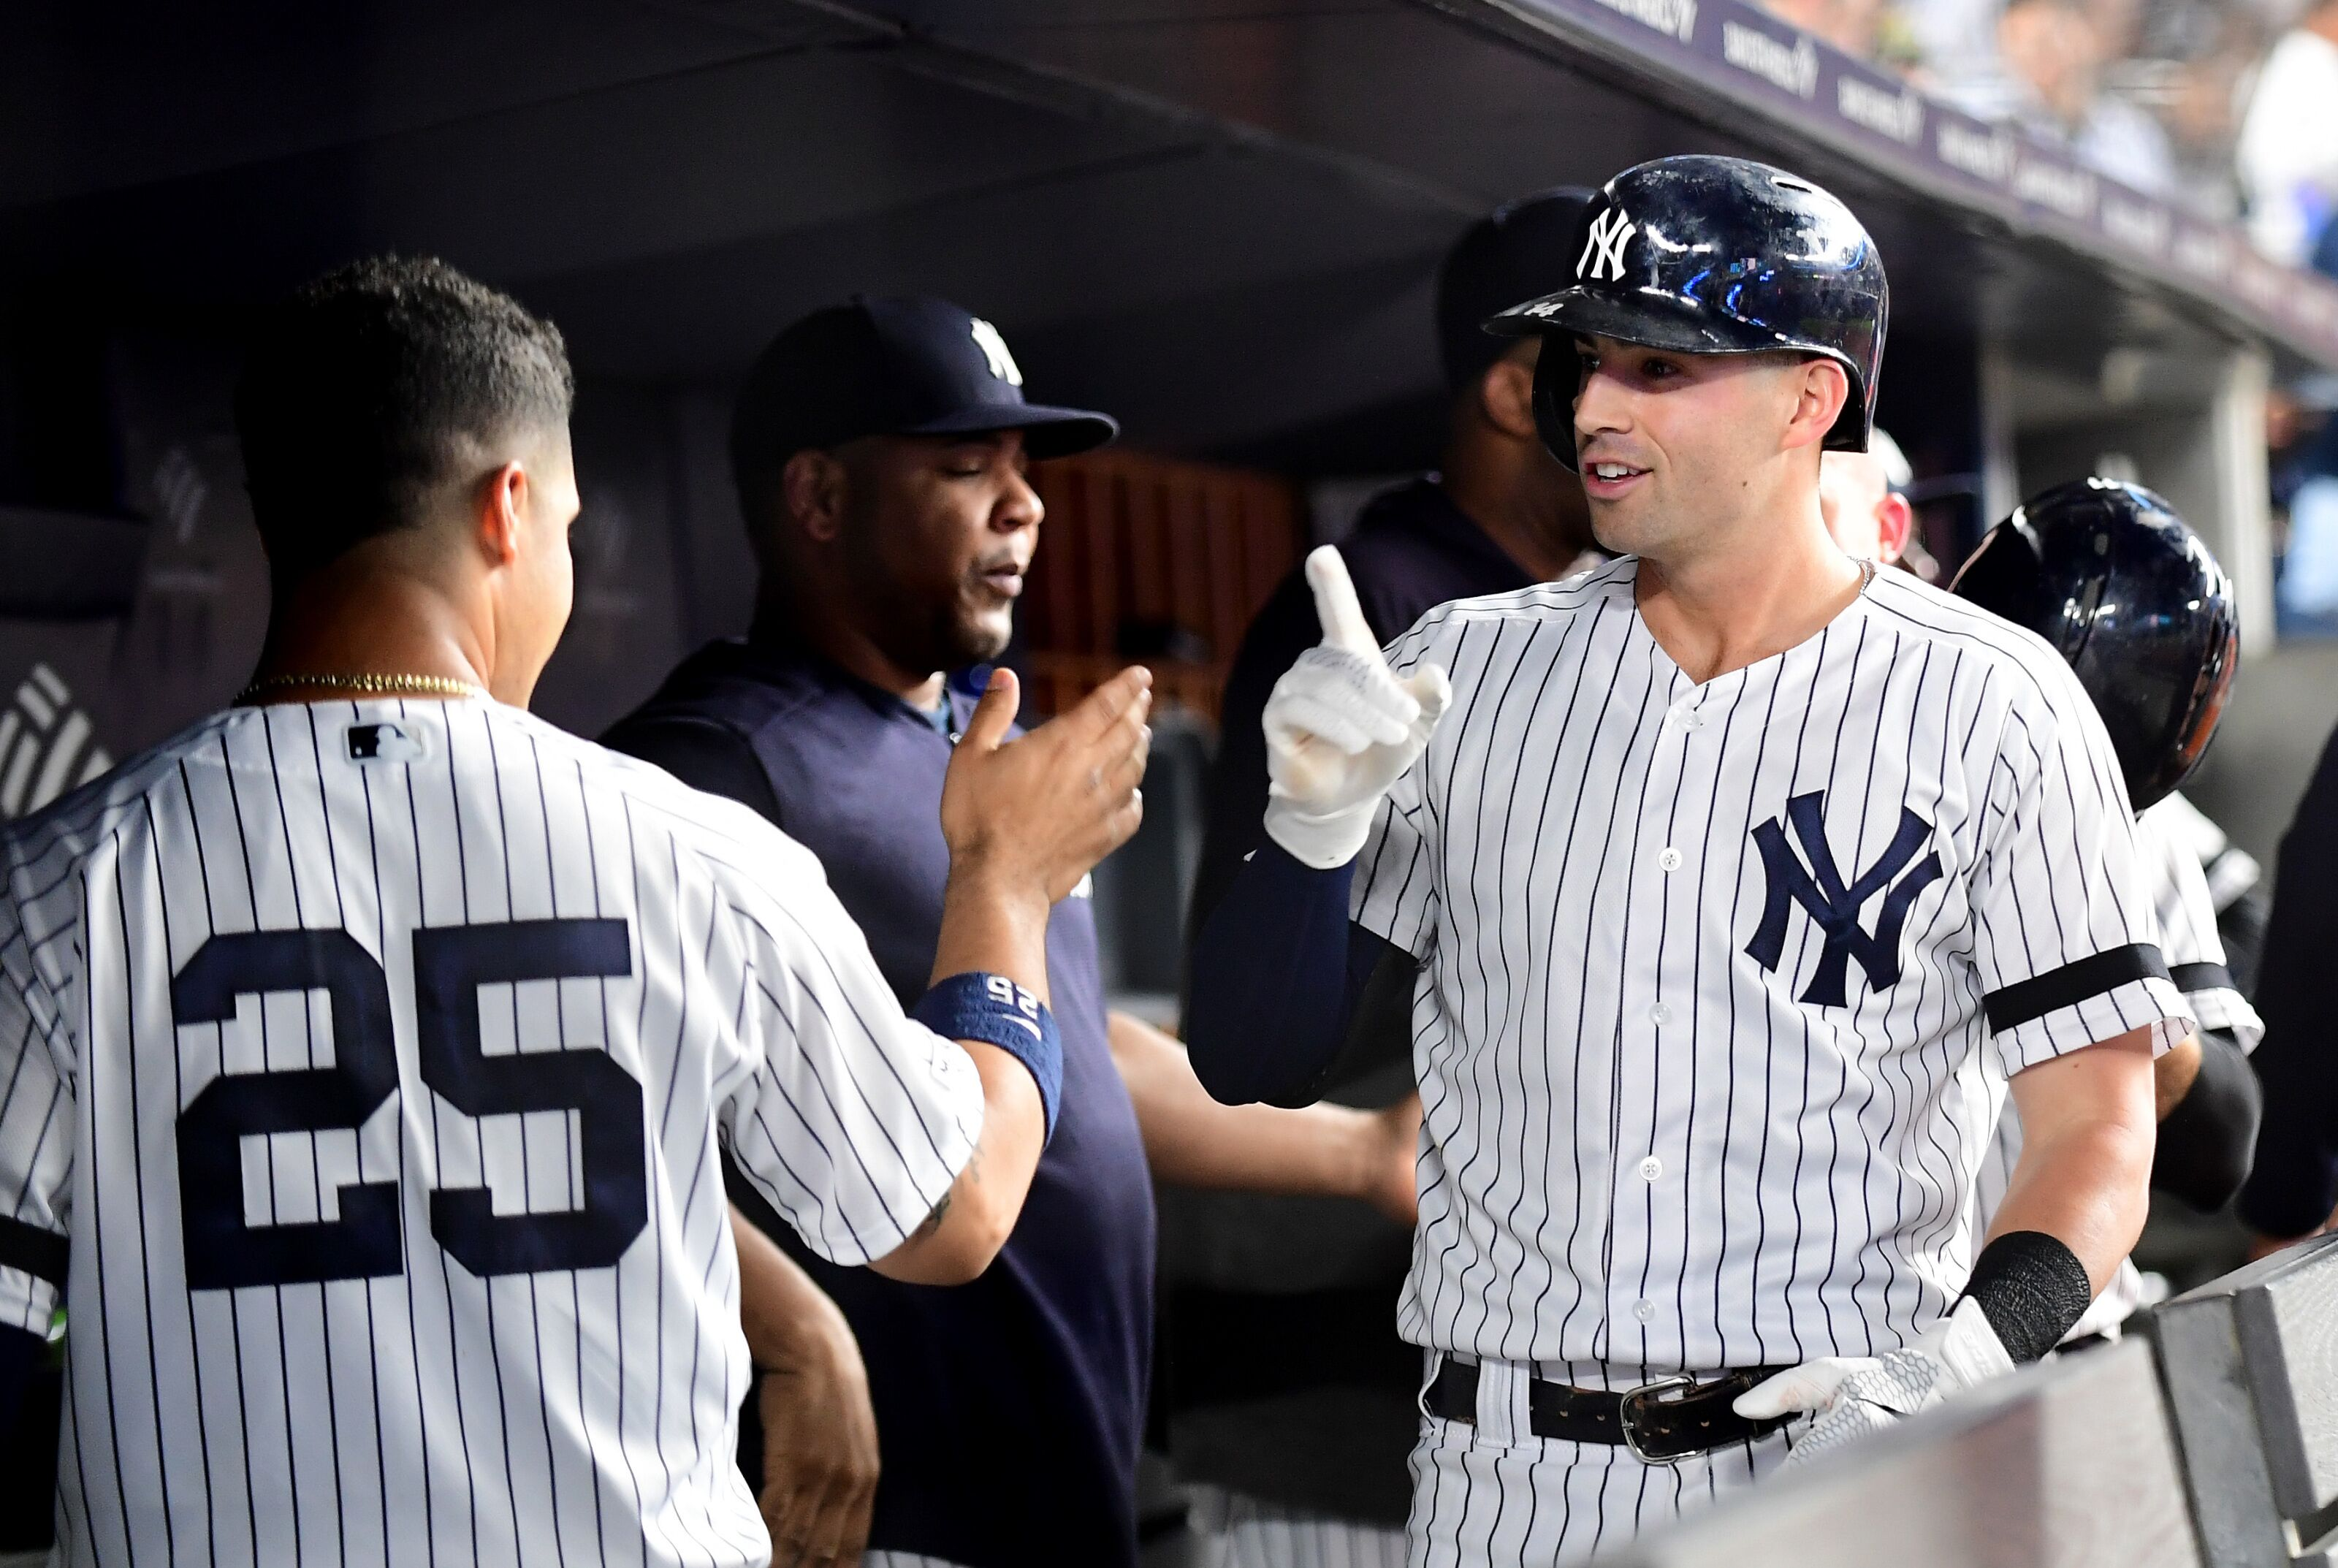 Yankees should give Tyler Wade a legit shot as their super utility player